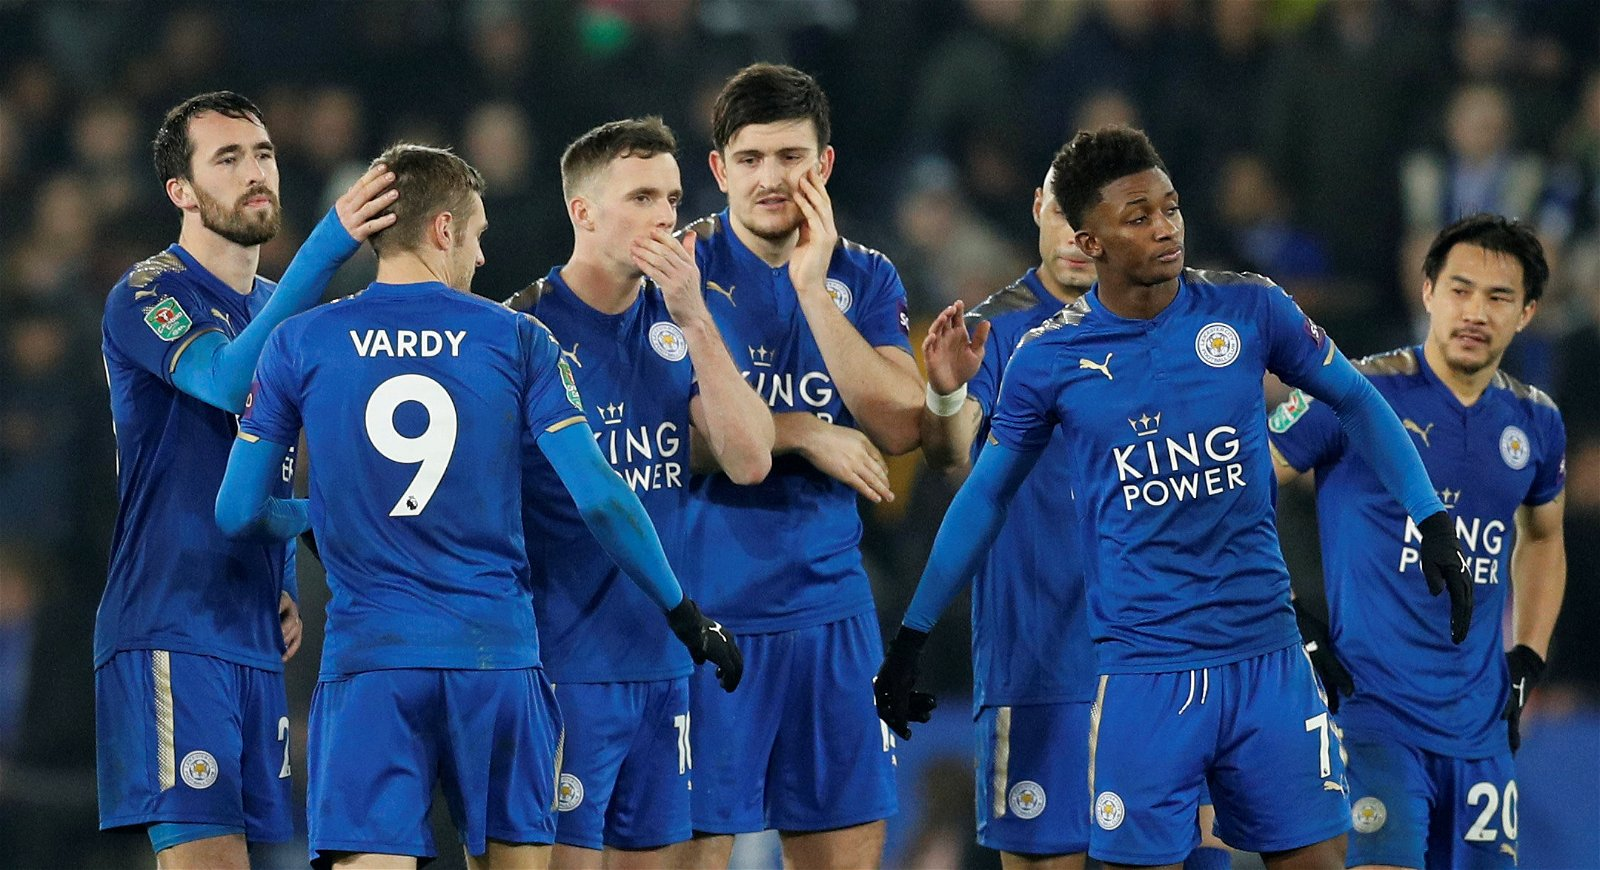 Leicester's League Cup policy shows the dilemma facing middle class clubs